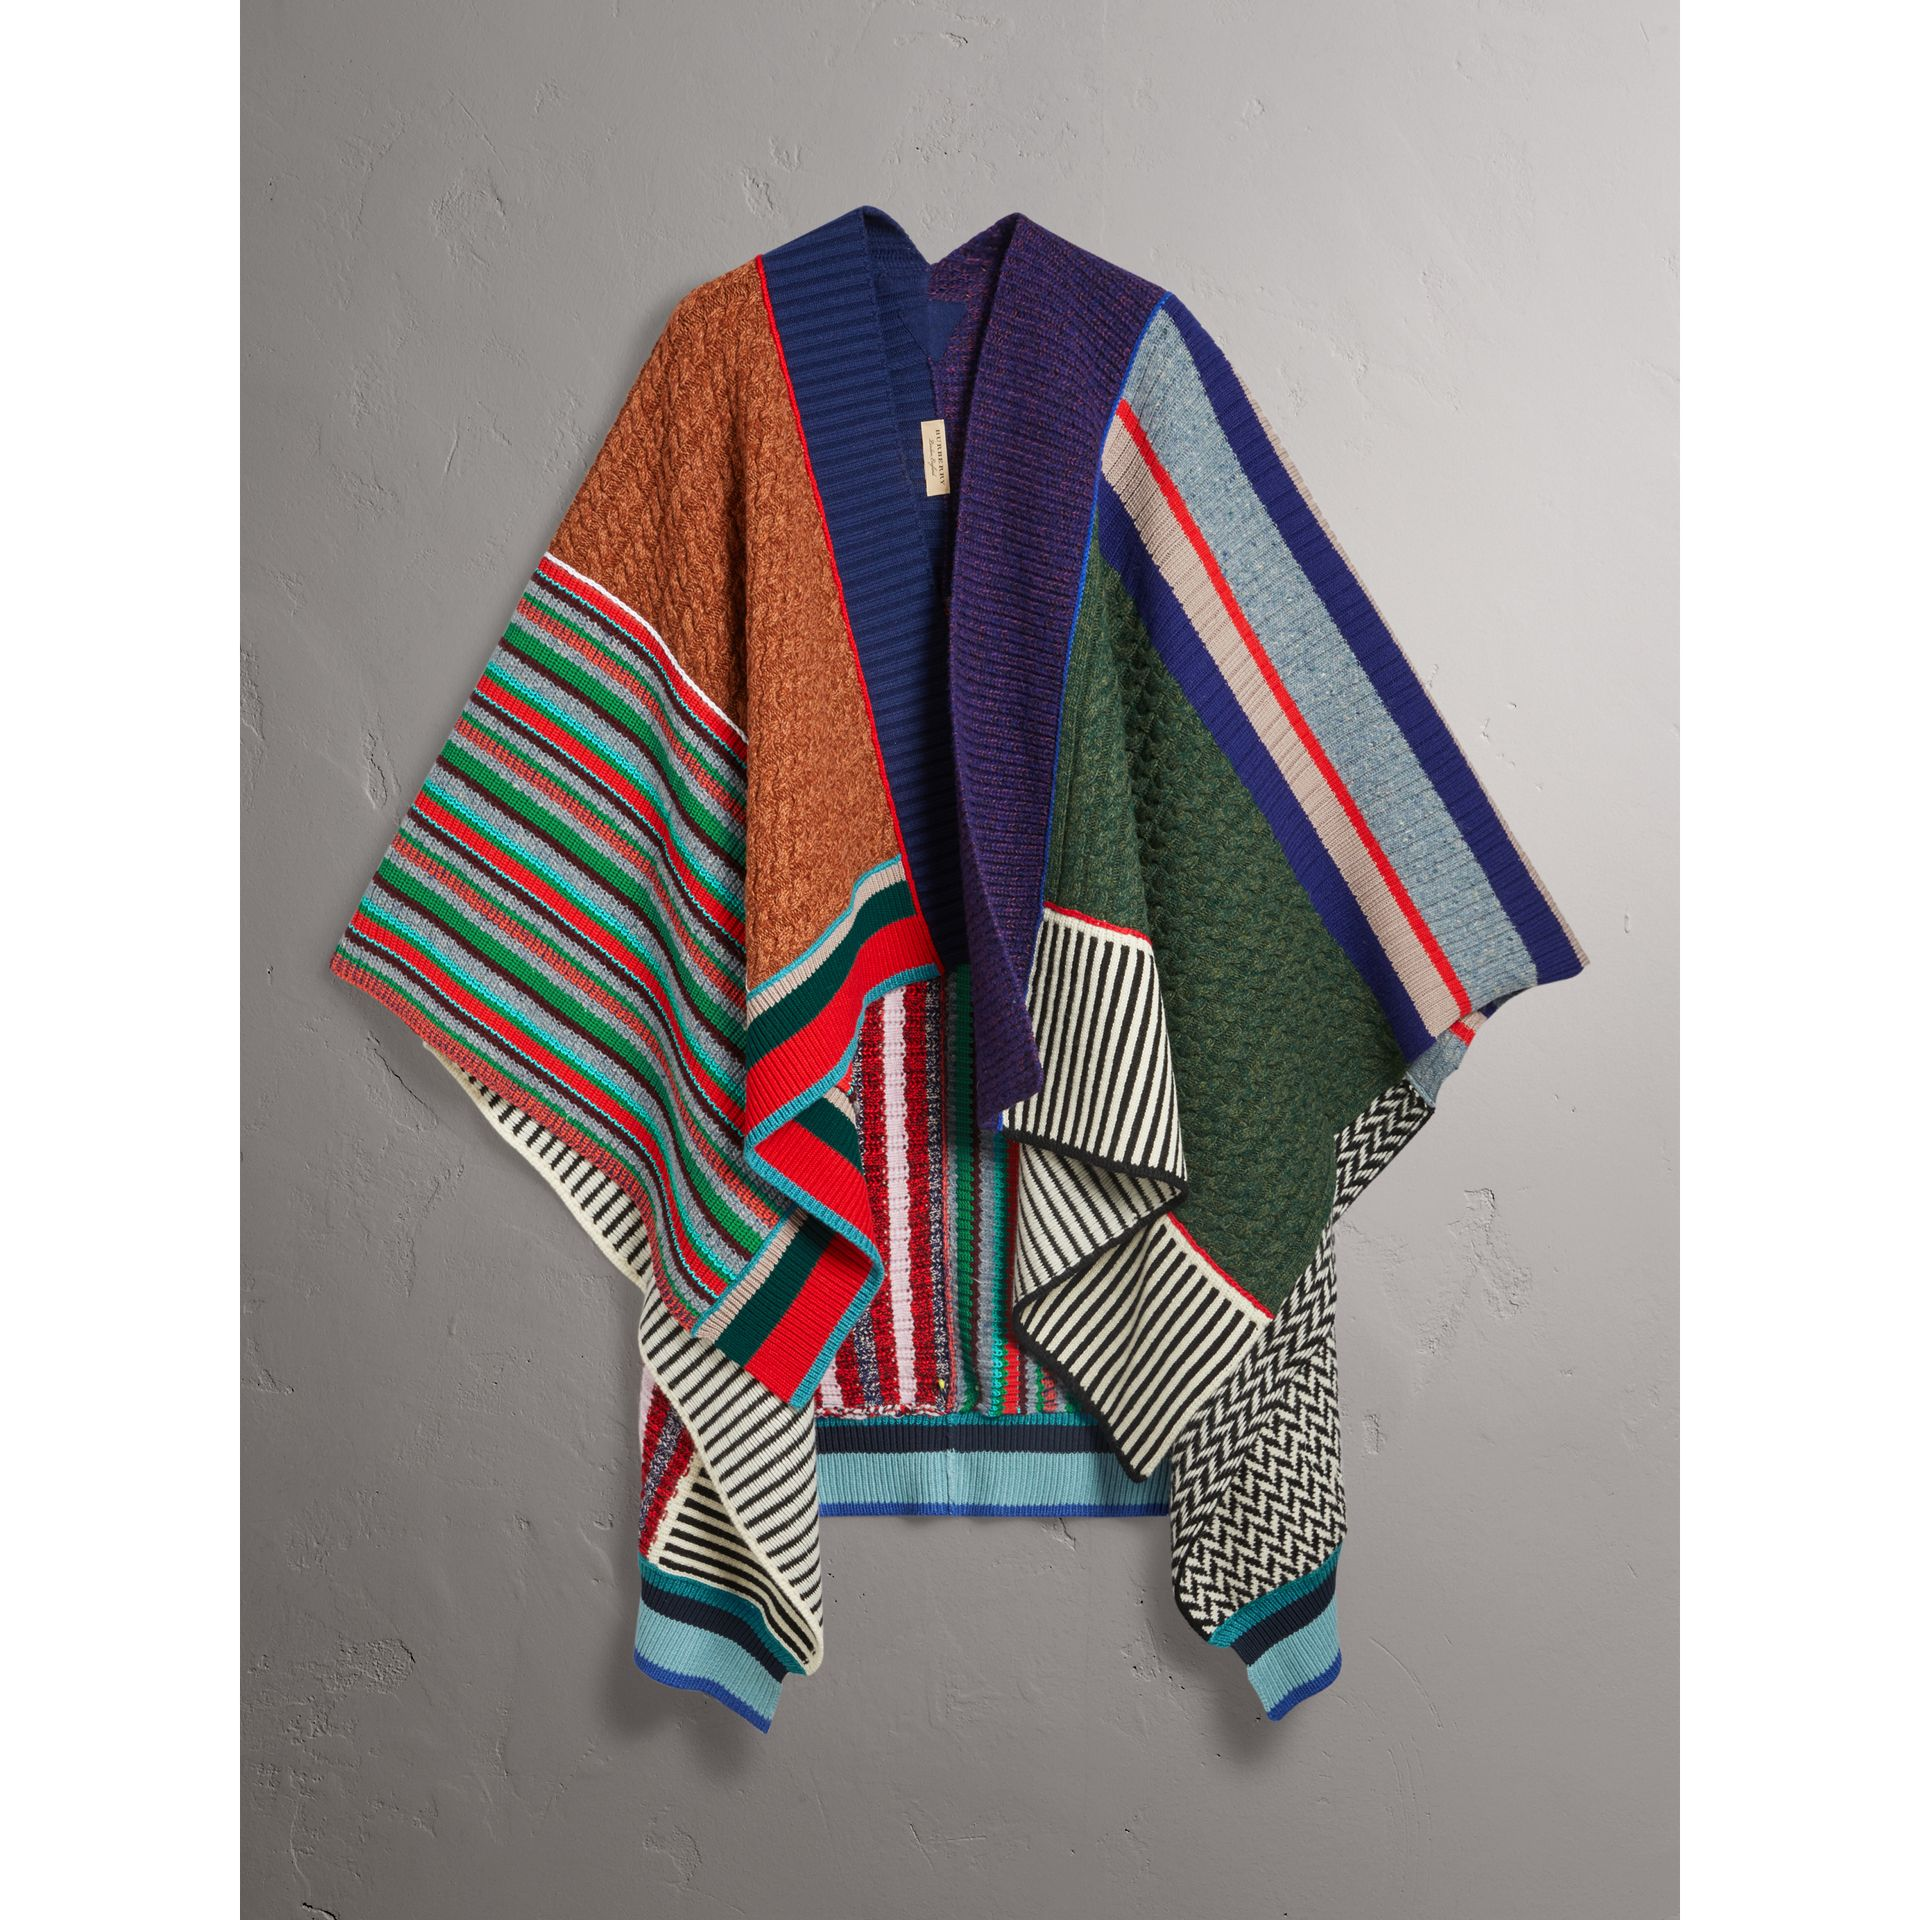 Wool Cashmere Blend Patchwork Poncho in Multicolour - Women | Burberry United States - gallery image 3